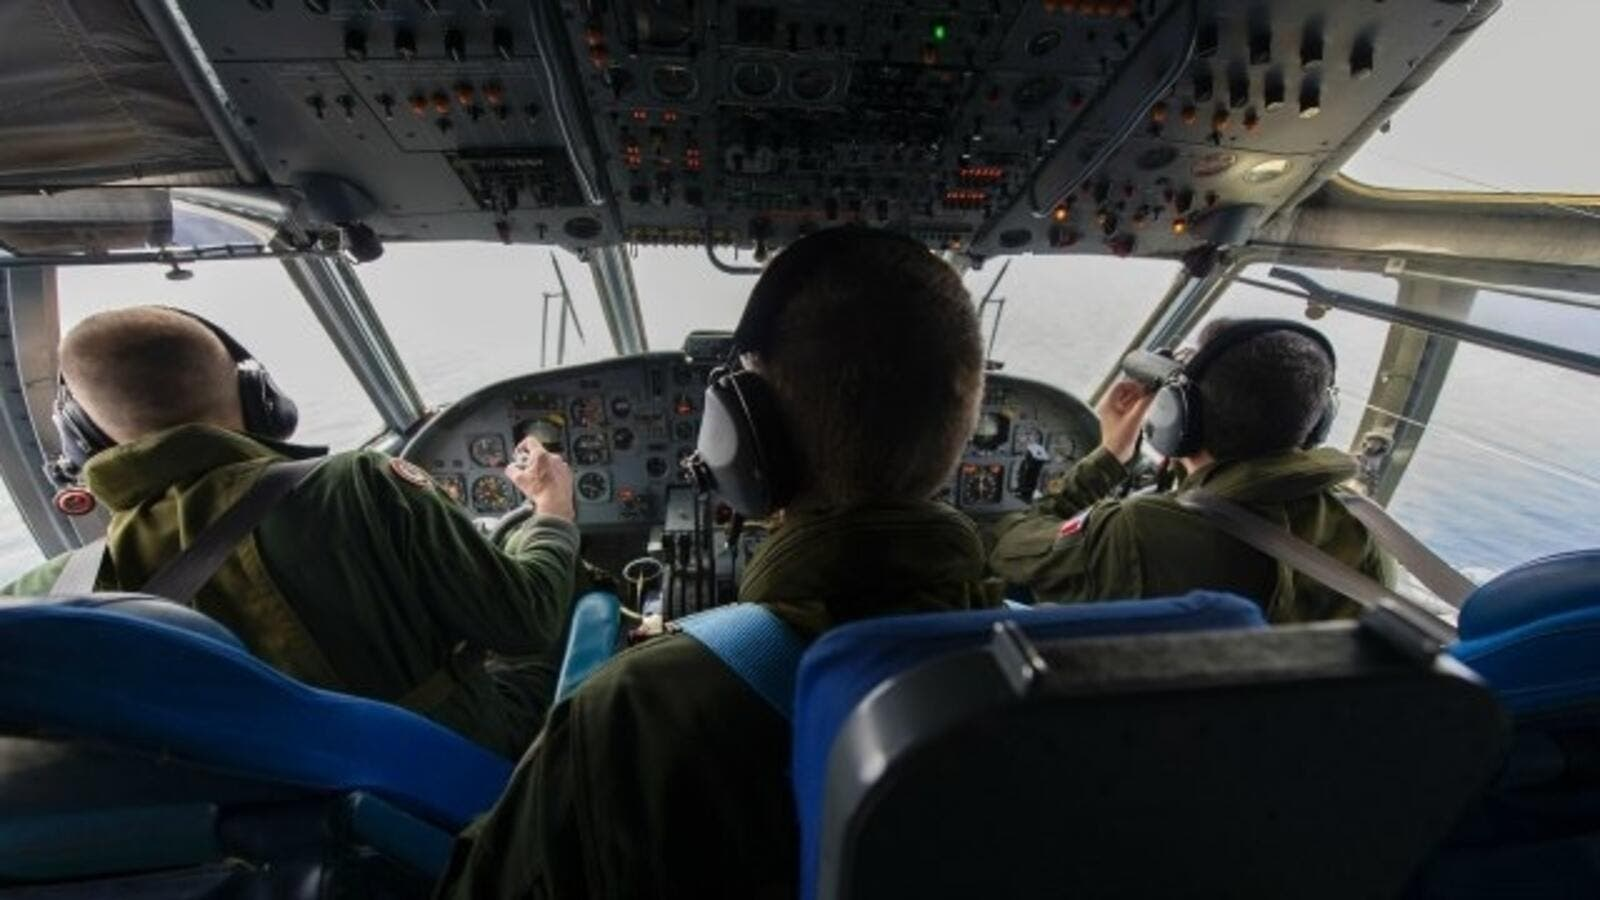 French soldiers aboard an aircraft search for debris from the crashed EgyptAir flight MS804 over the Mediterranean Sea. Egypt enlisted a submarine on May 22 to search the Mediterranean seabed for the black boxes of EgyptAir MS804. (AFP/File)